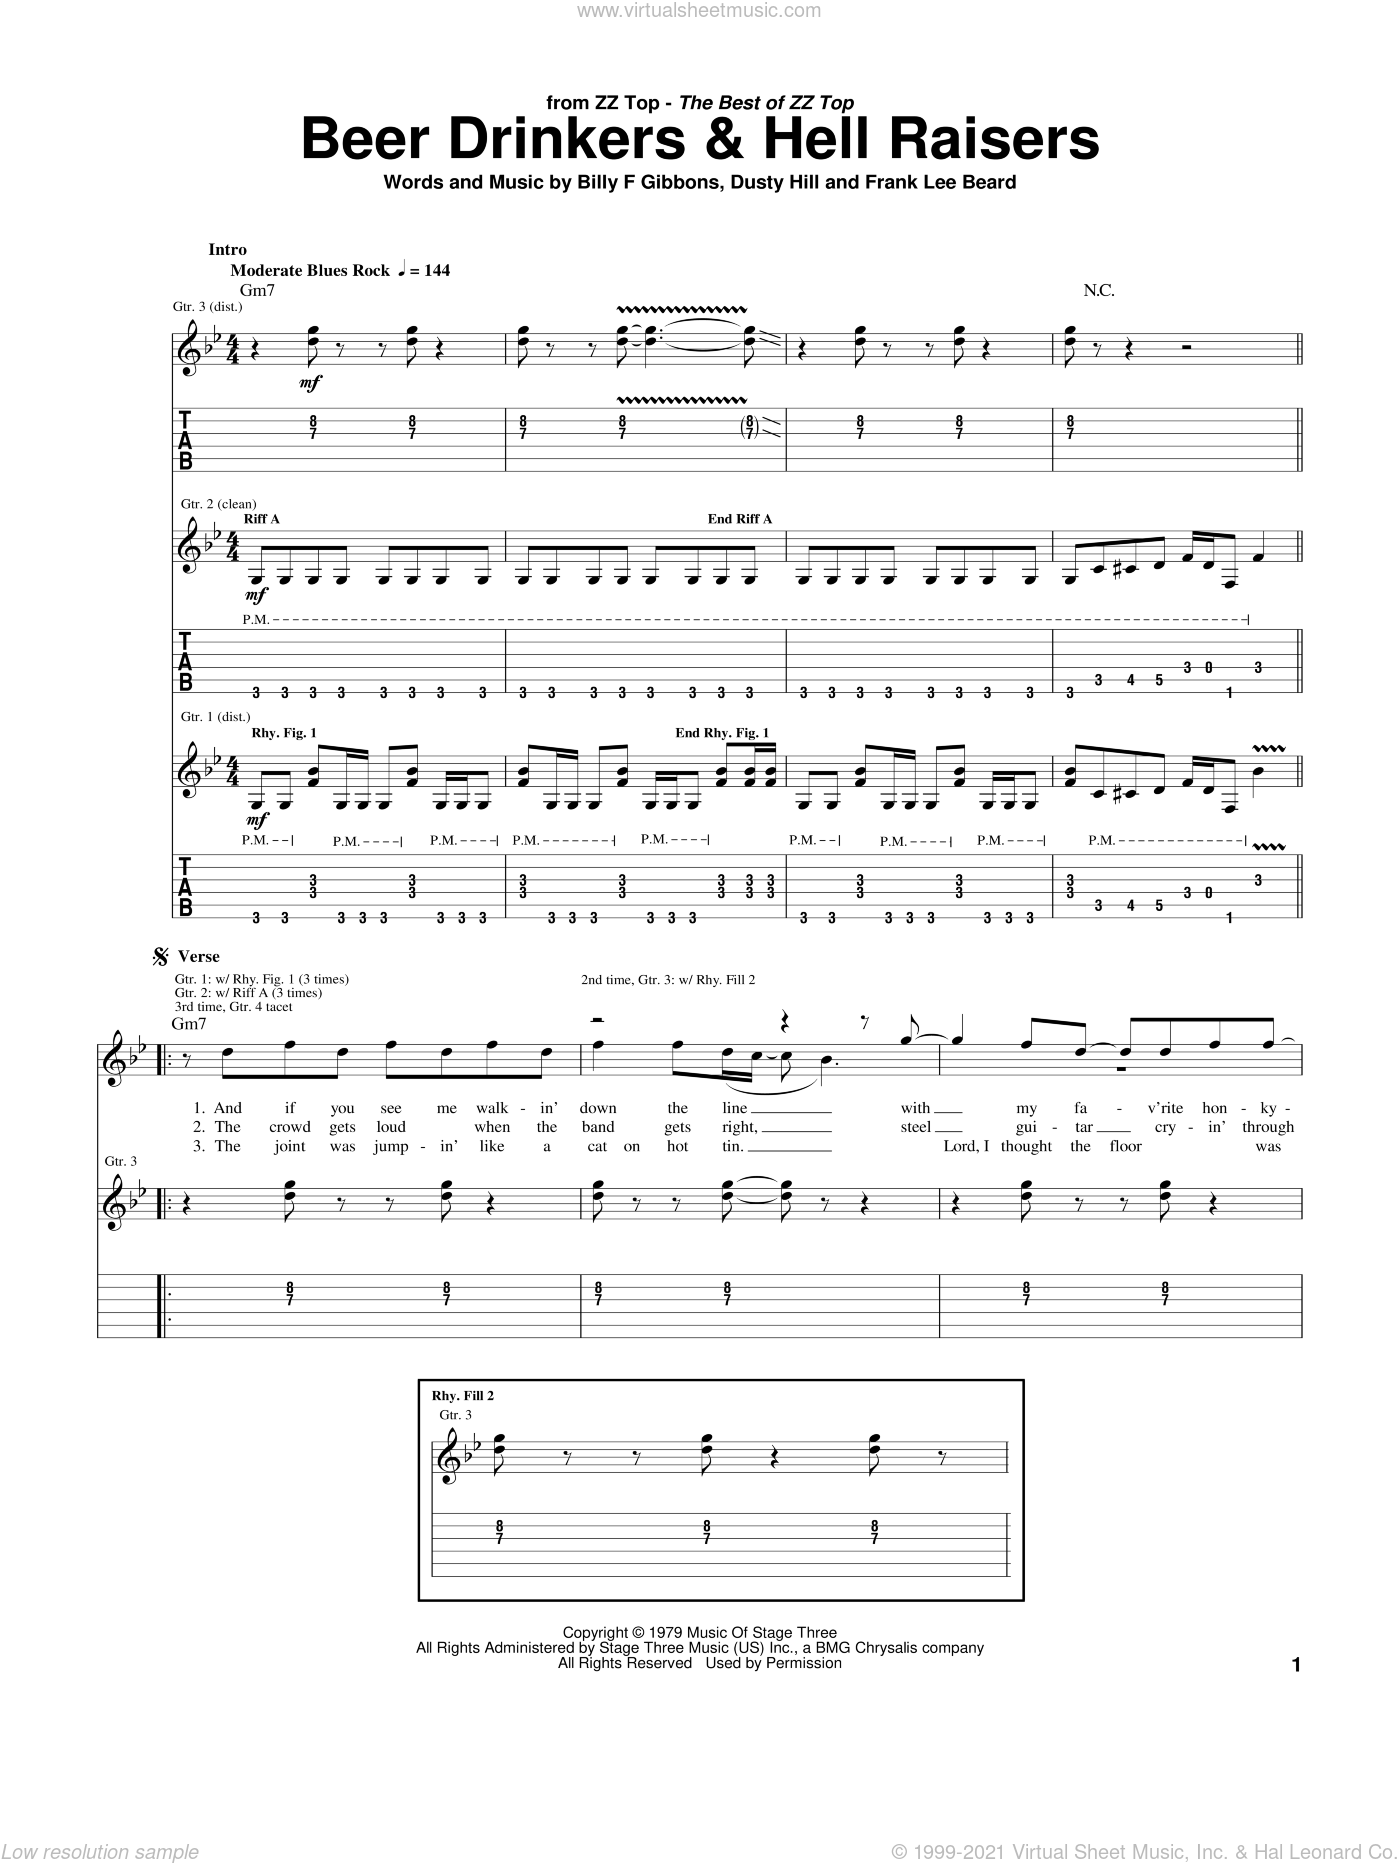 Hell Raisers sheet music for guitar (tablature) by Frank Beard